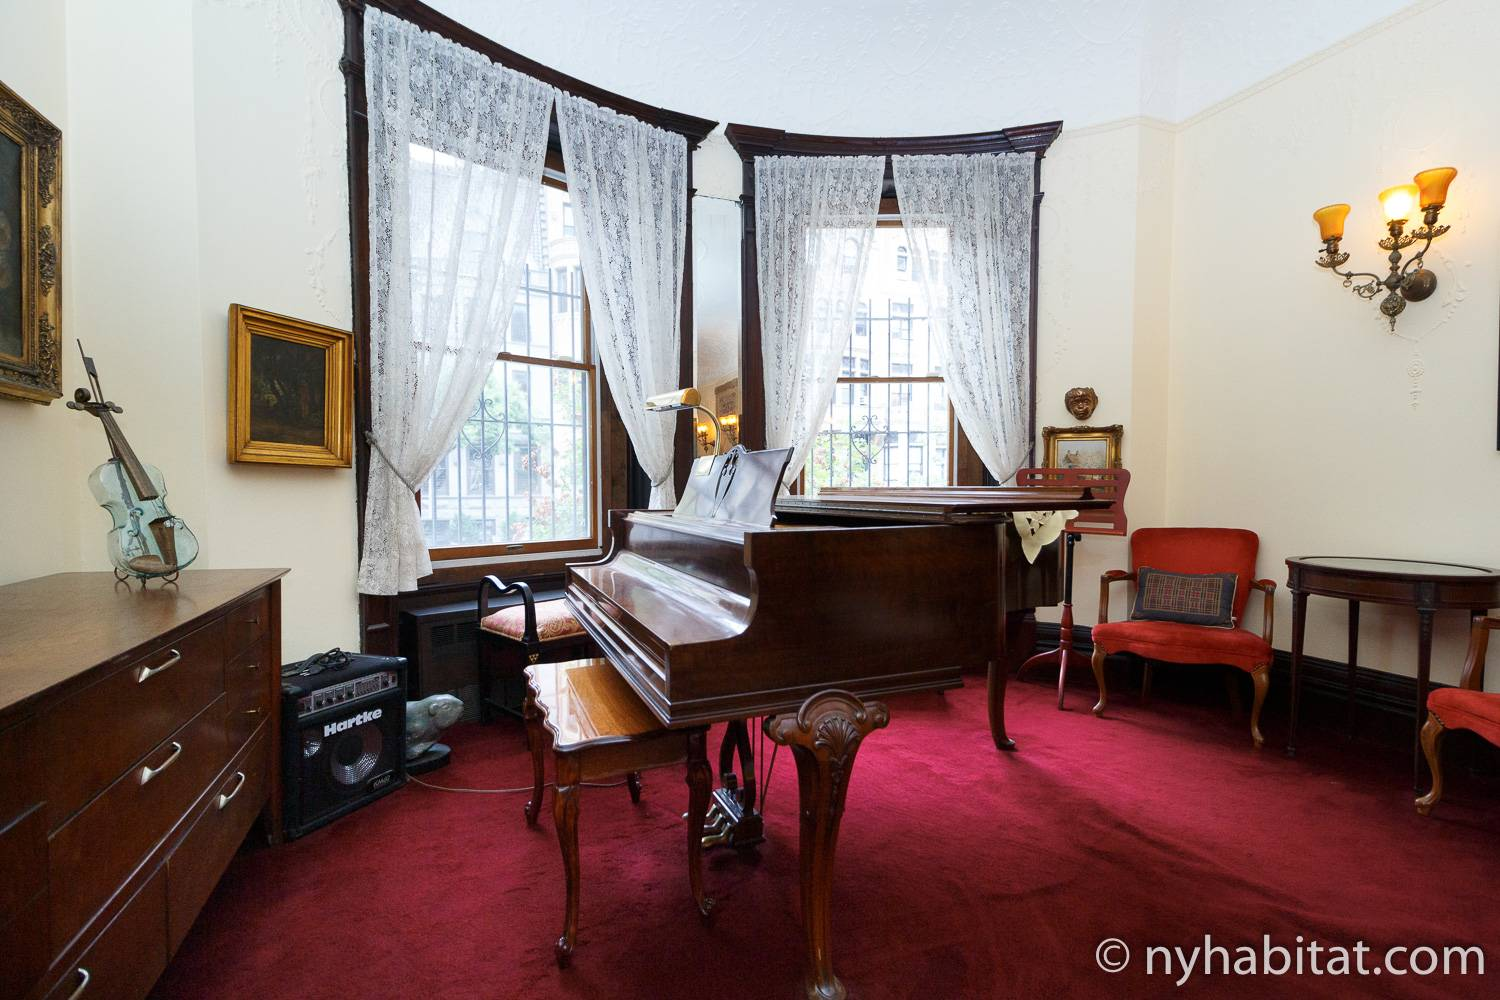 Image of piano in the living room of NY-14656 with plush red rug and antique furniture